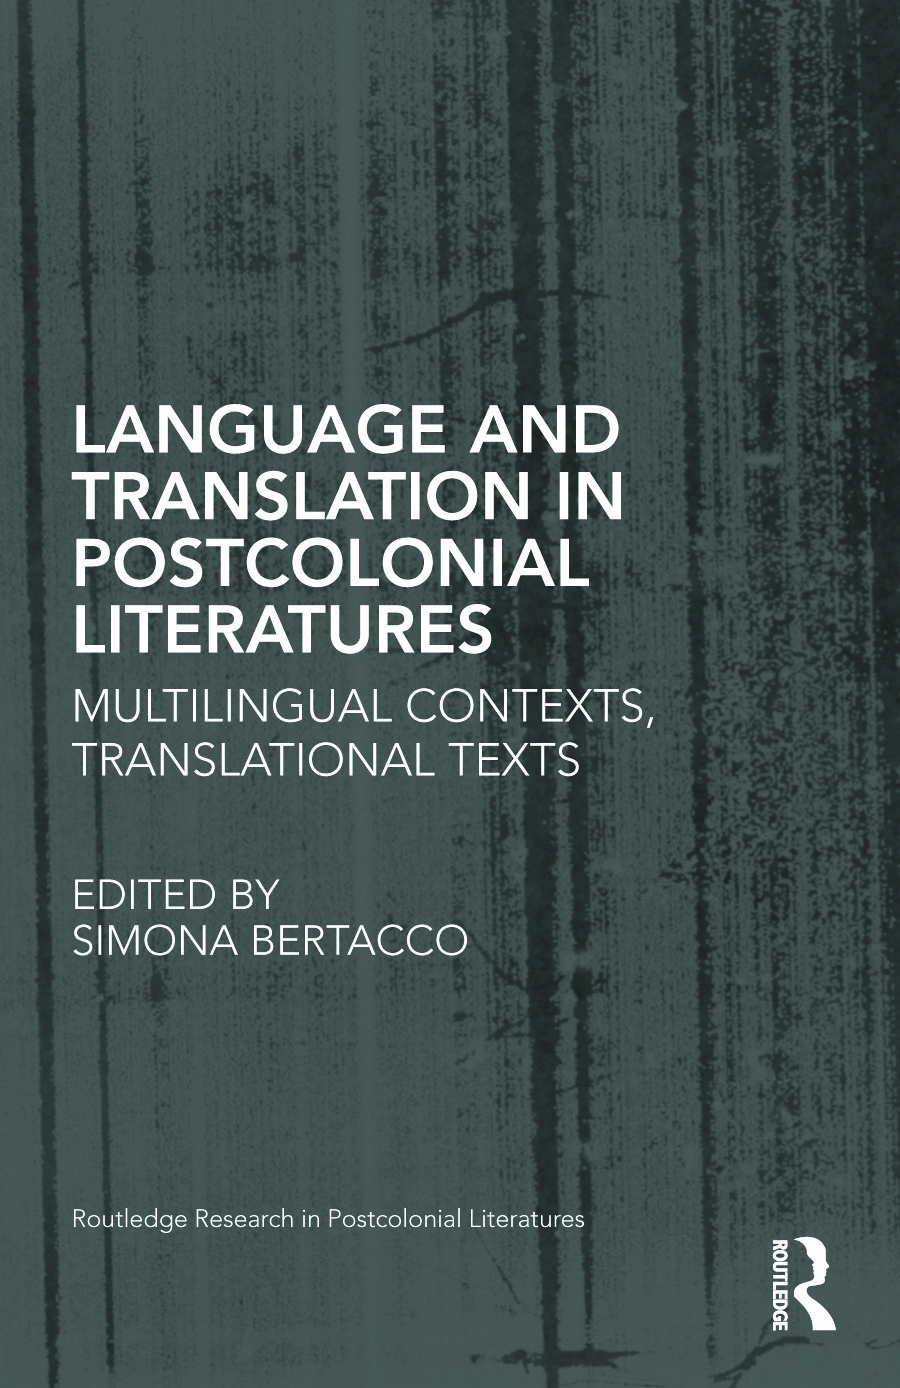 Language and Translation in Postcolonial Literatures Multilingual Contexts, Translational Texts 9780415656047